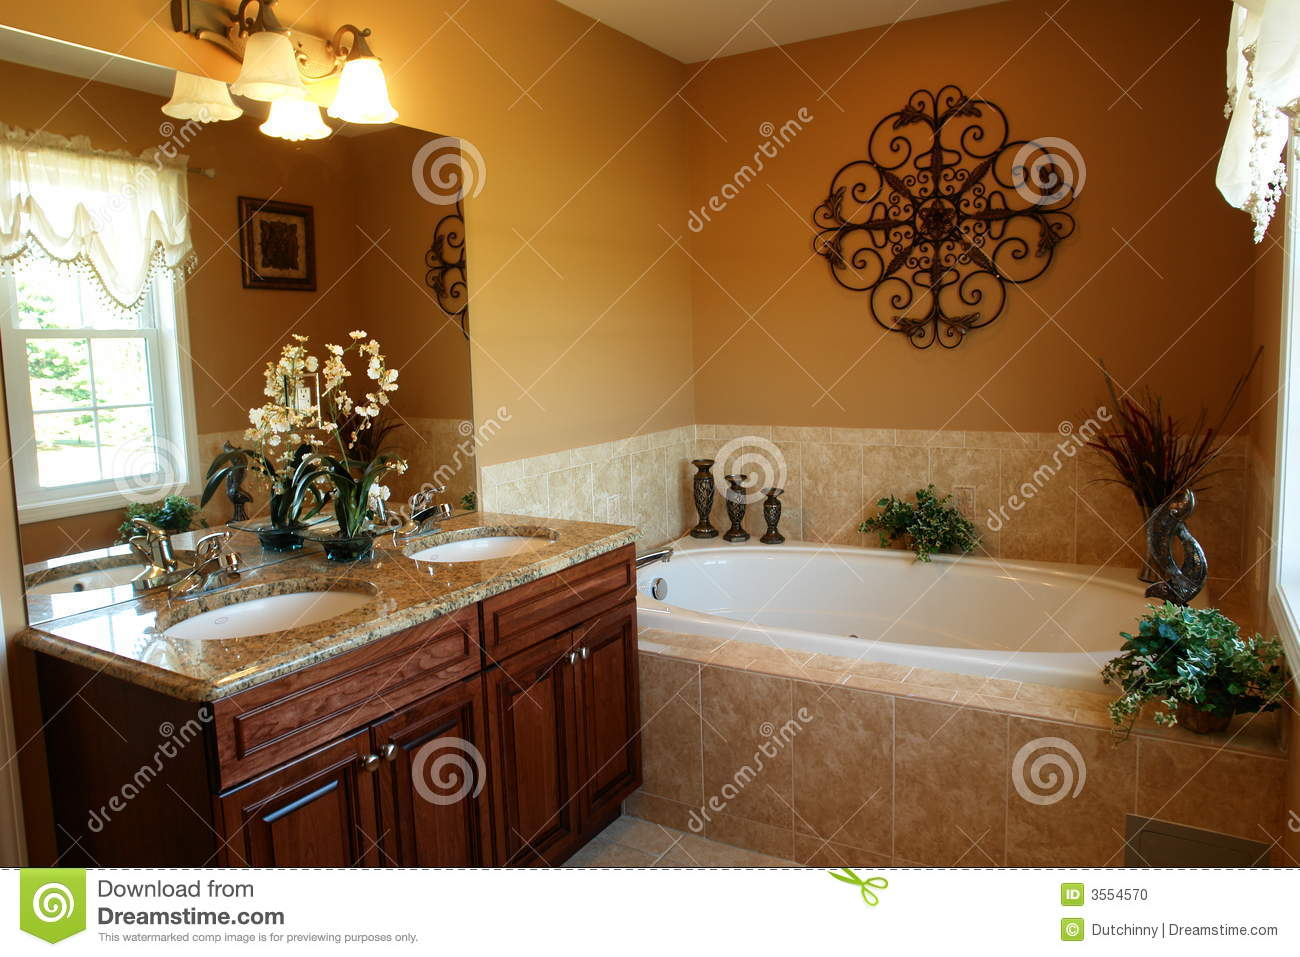 salle de bains de luxe avec le jacuzzi photo stock image 3554570. Black Bedroom Furniture Sets. Home Design Ideas